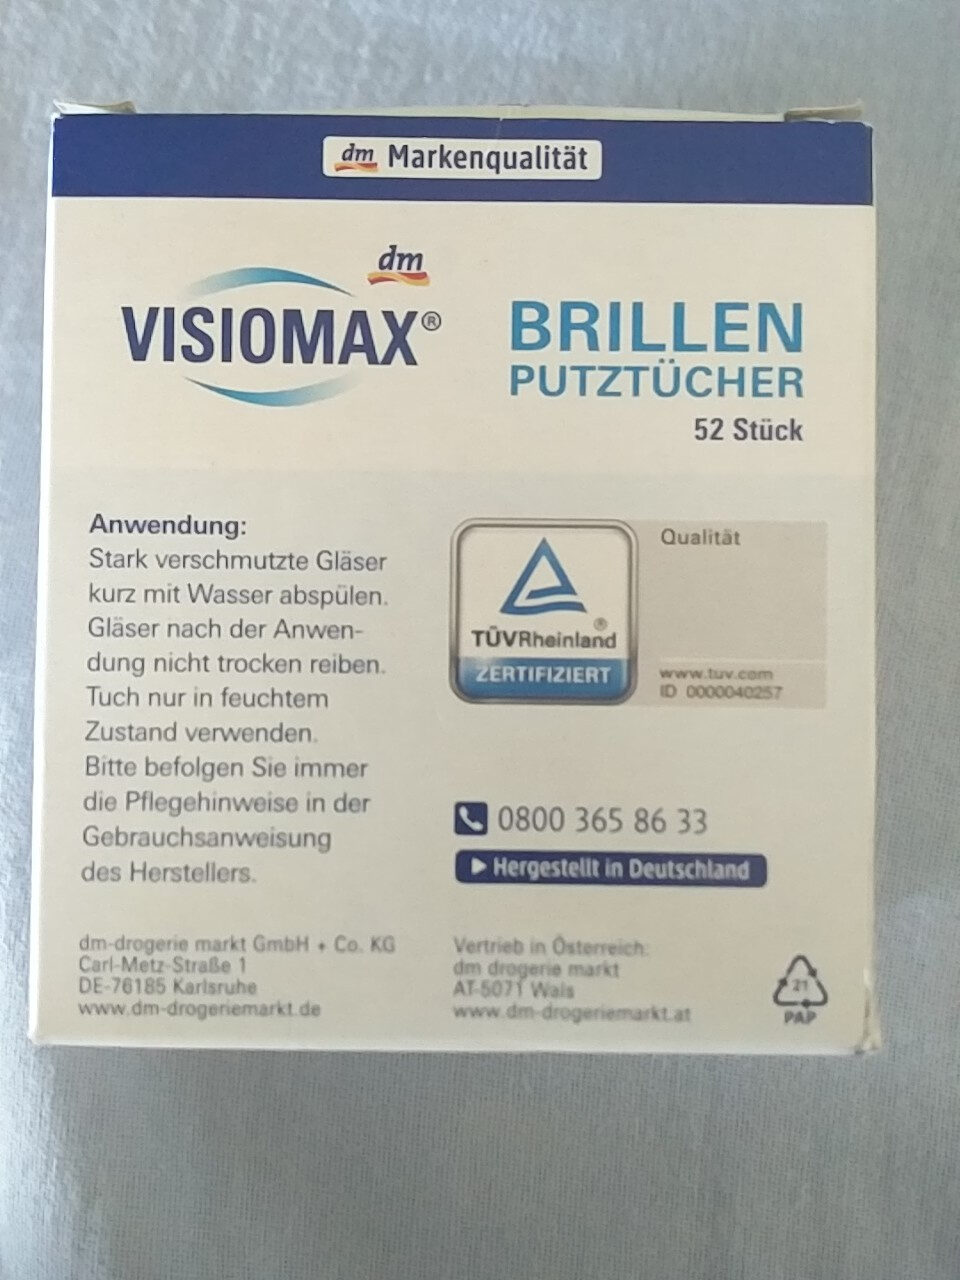 Brillenputztücher - Product - en